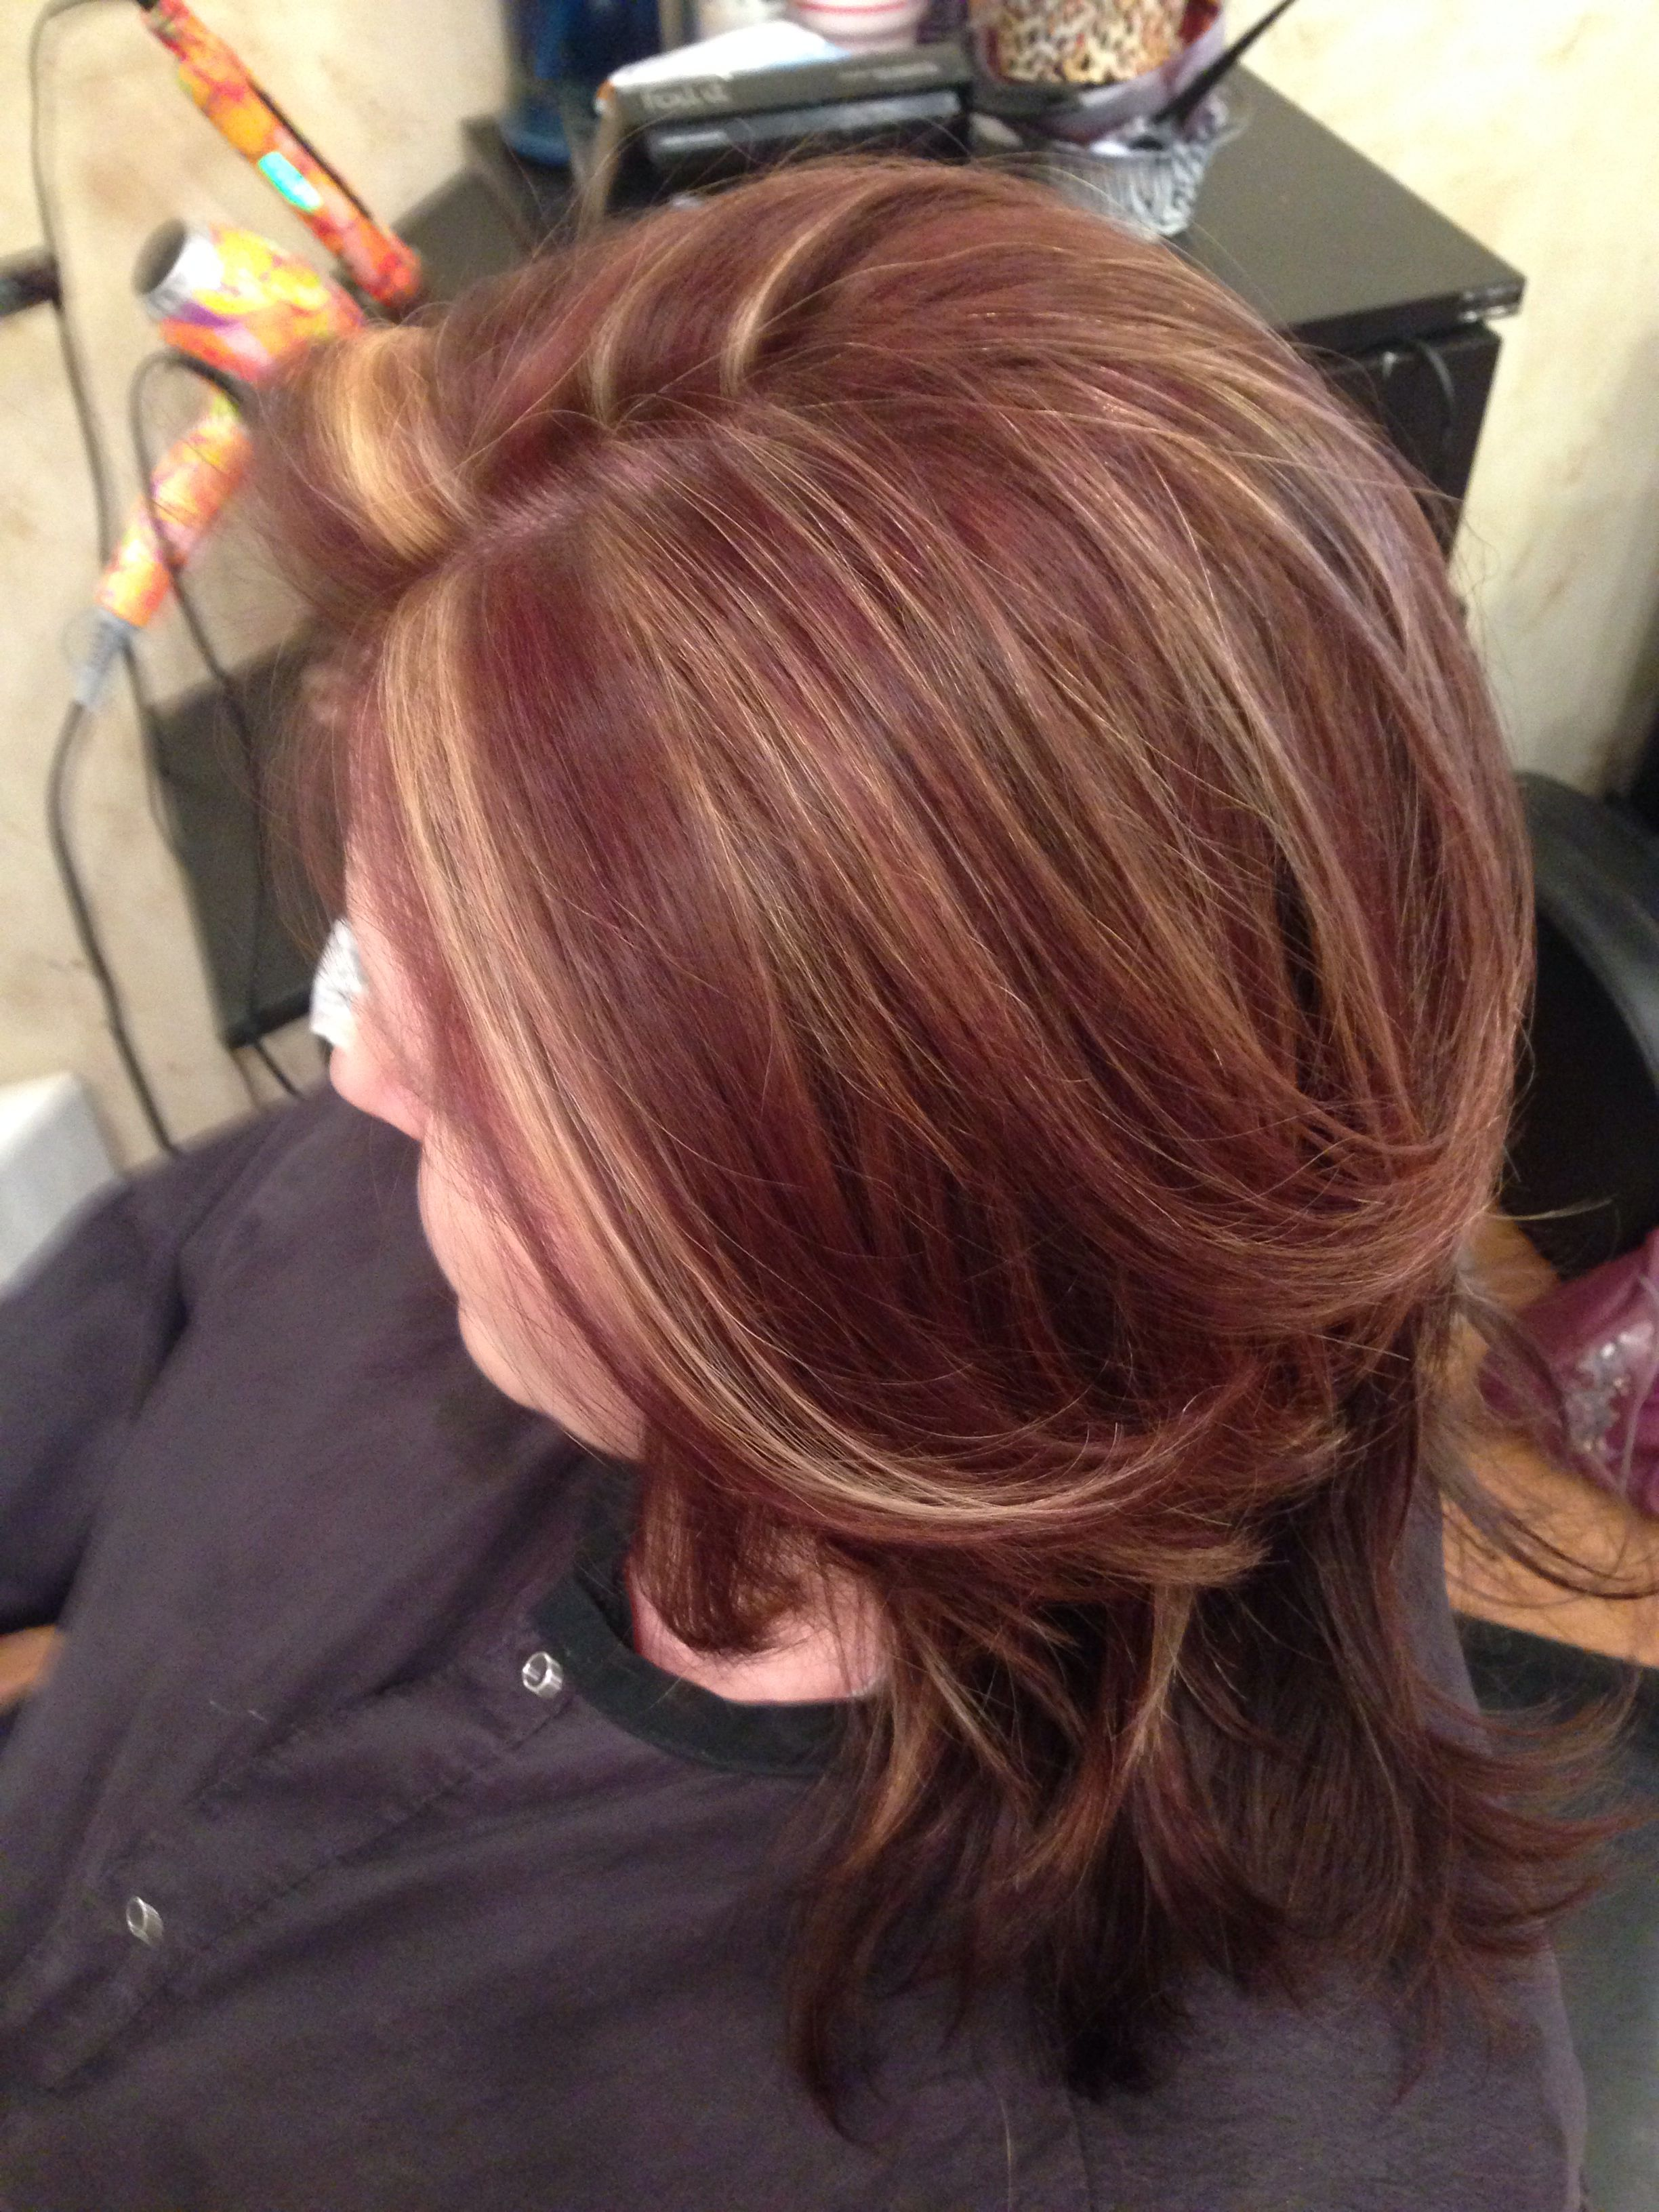 Warm blonde chunks with racing red and chocolate brown lowlights